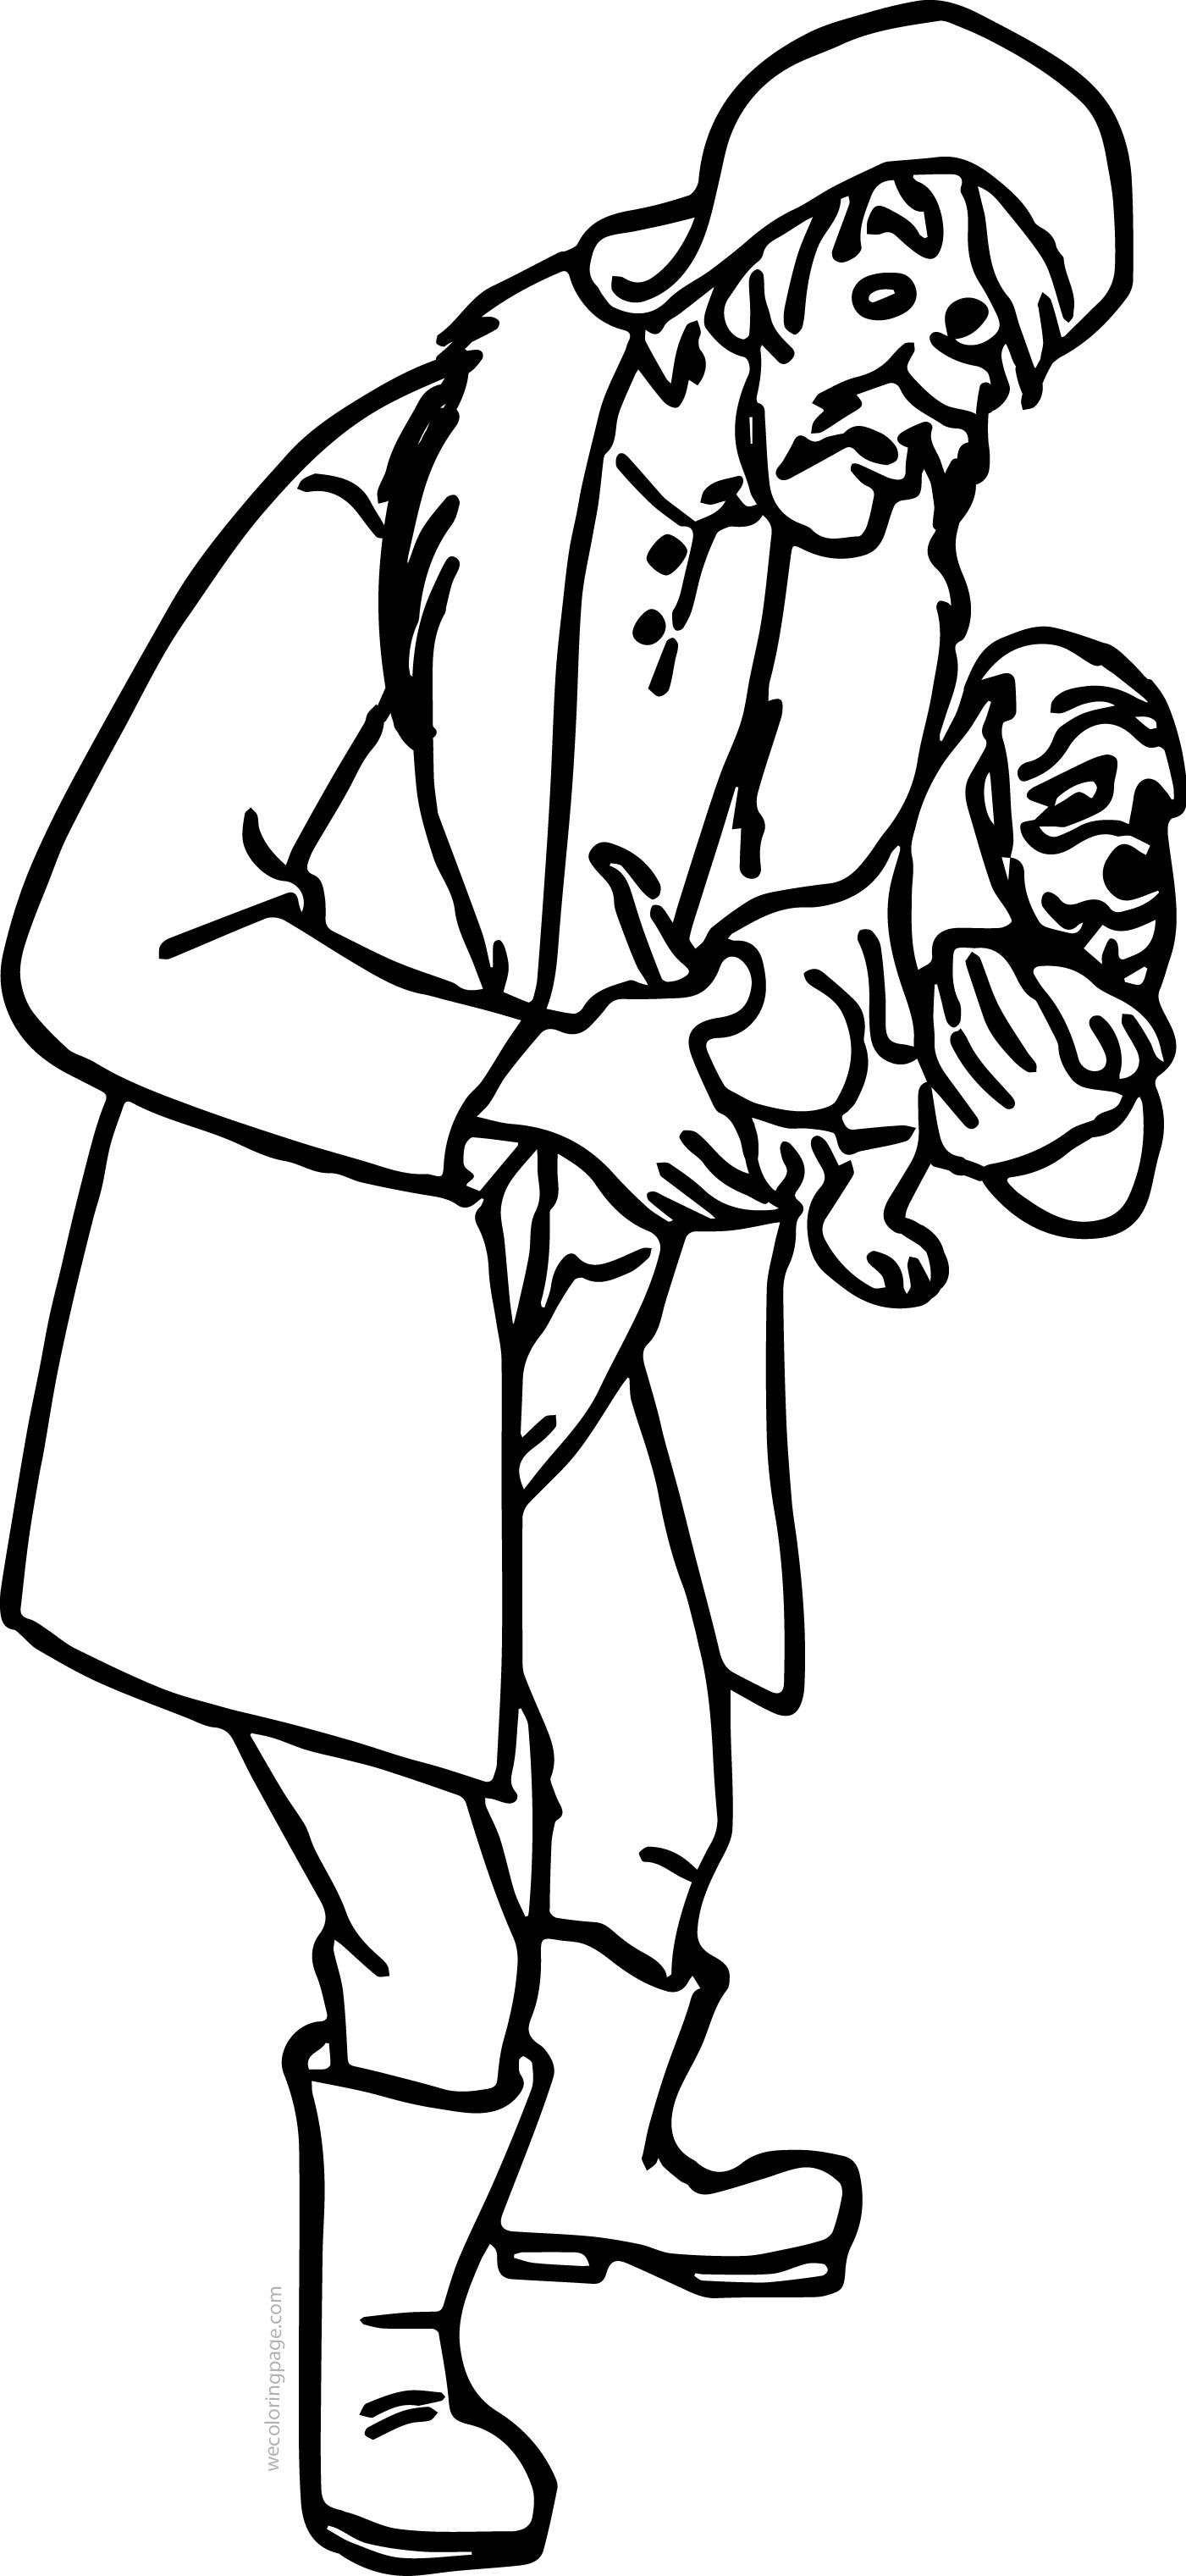 Amos And Dog Coloring Page